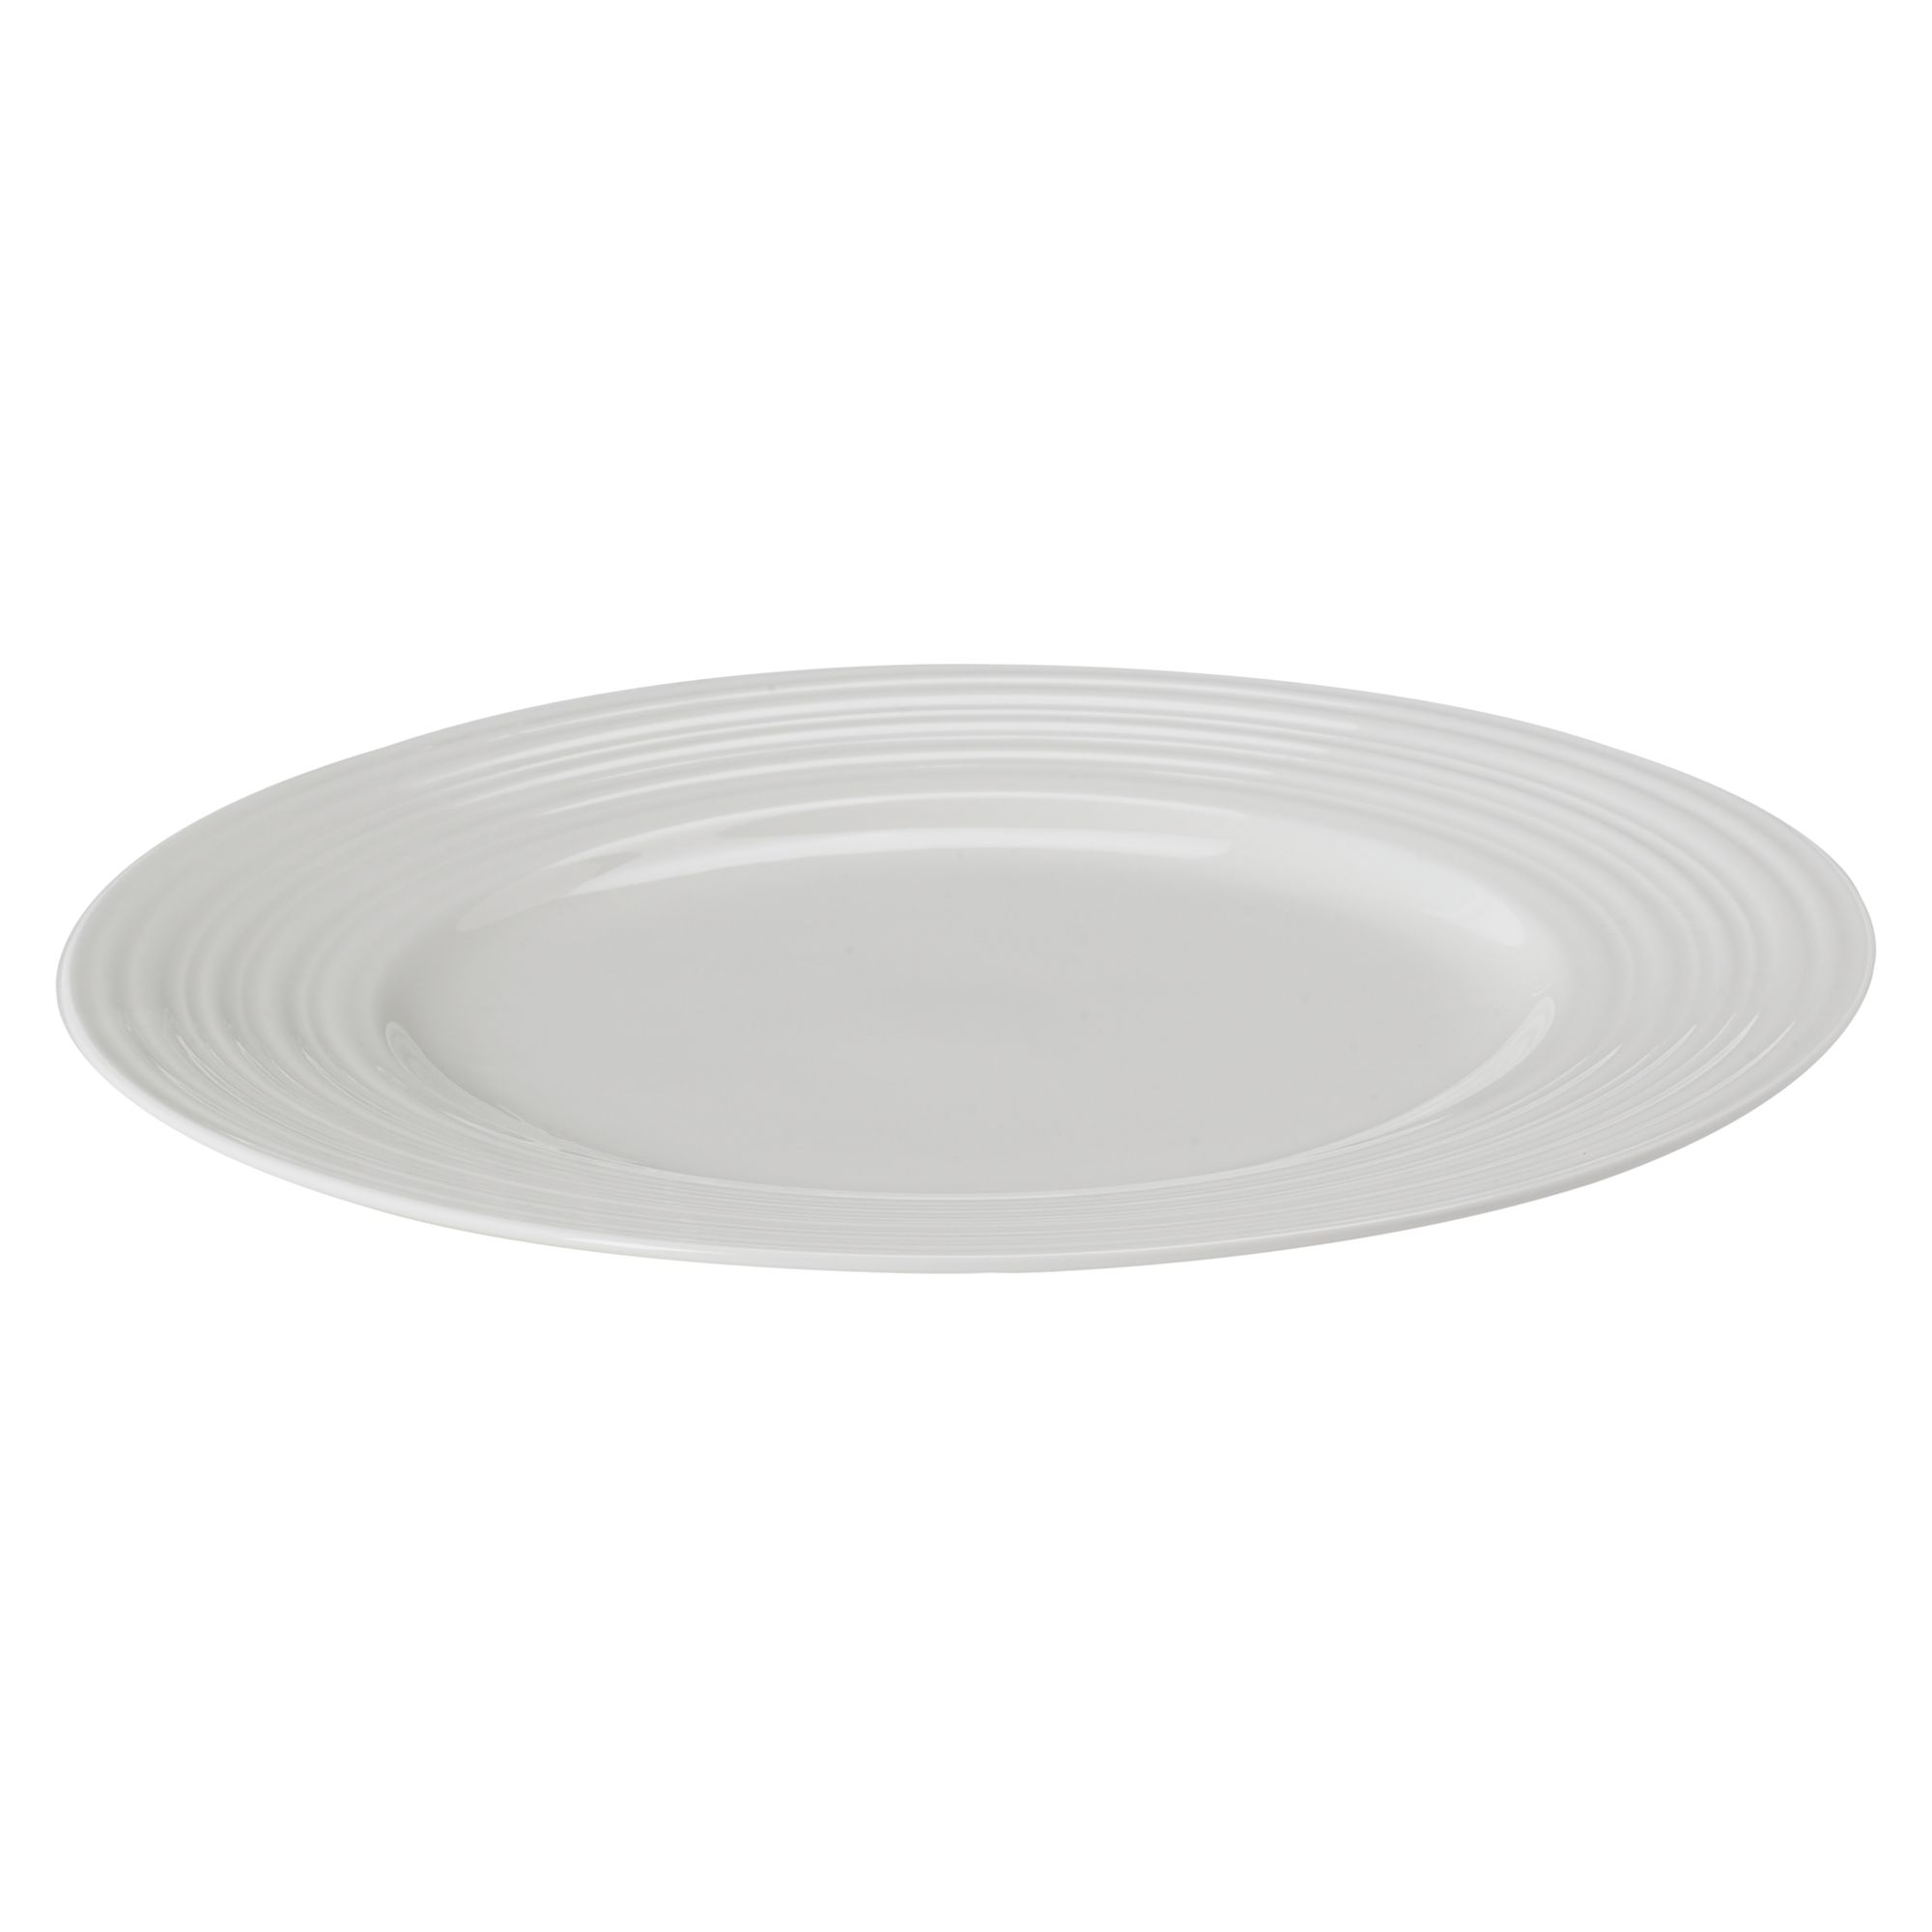 Soho Bone China Dinner Plate